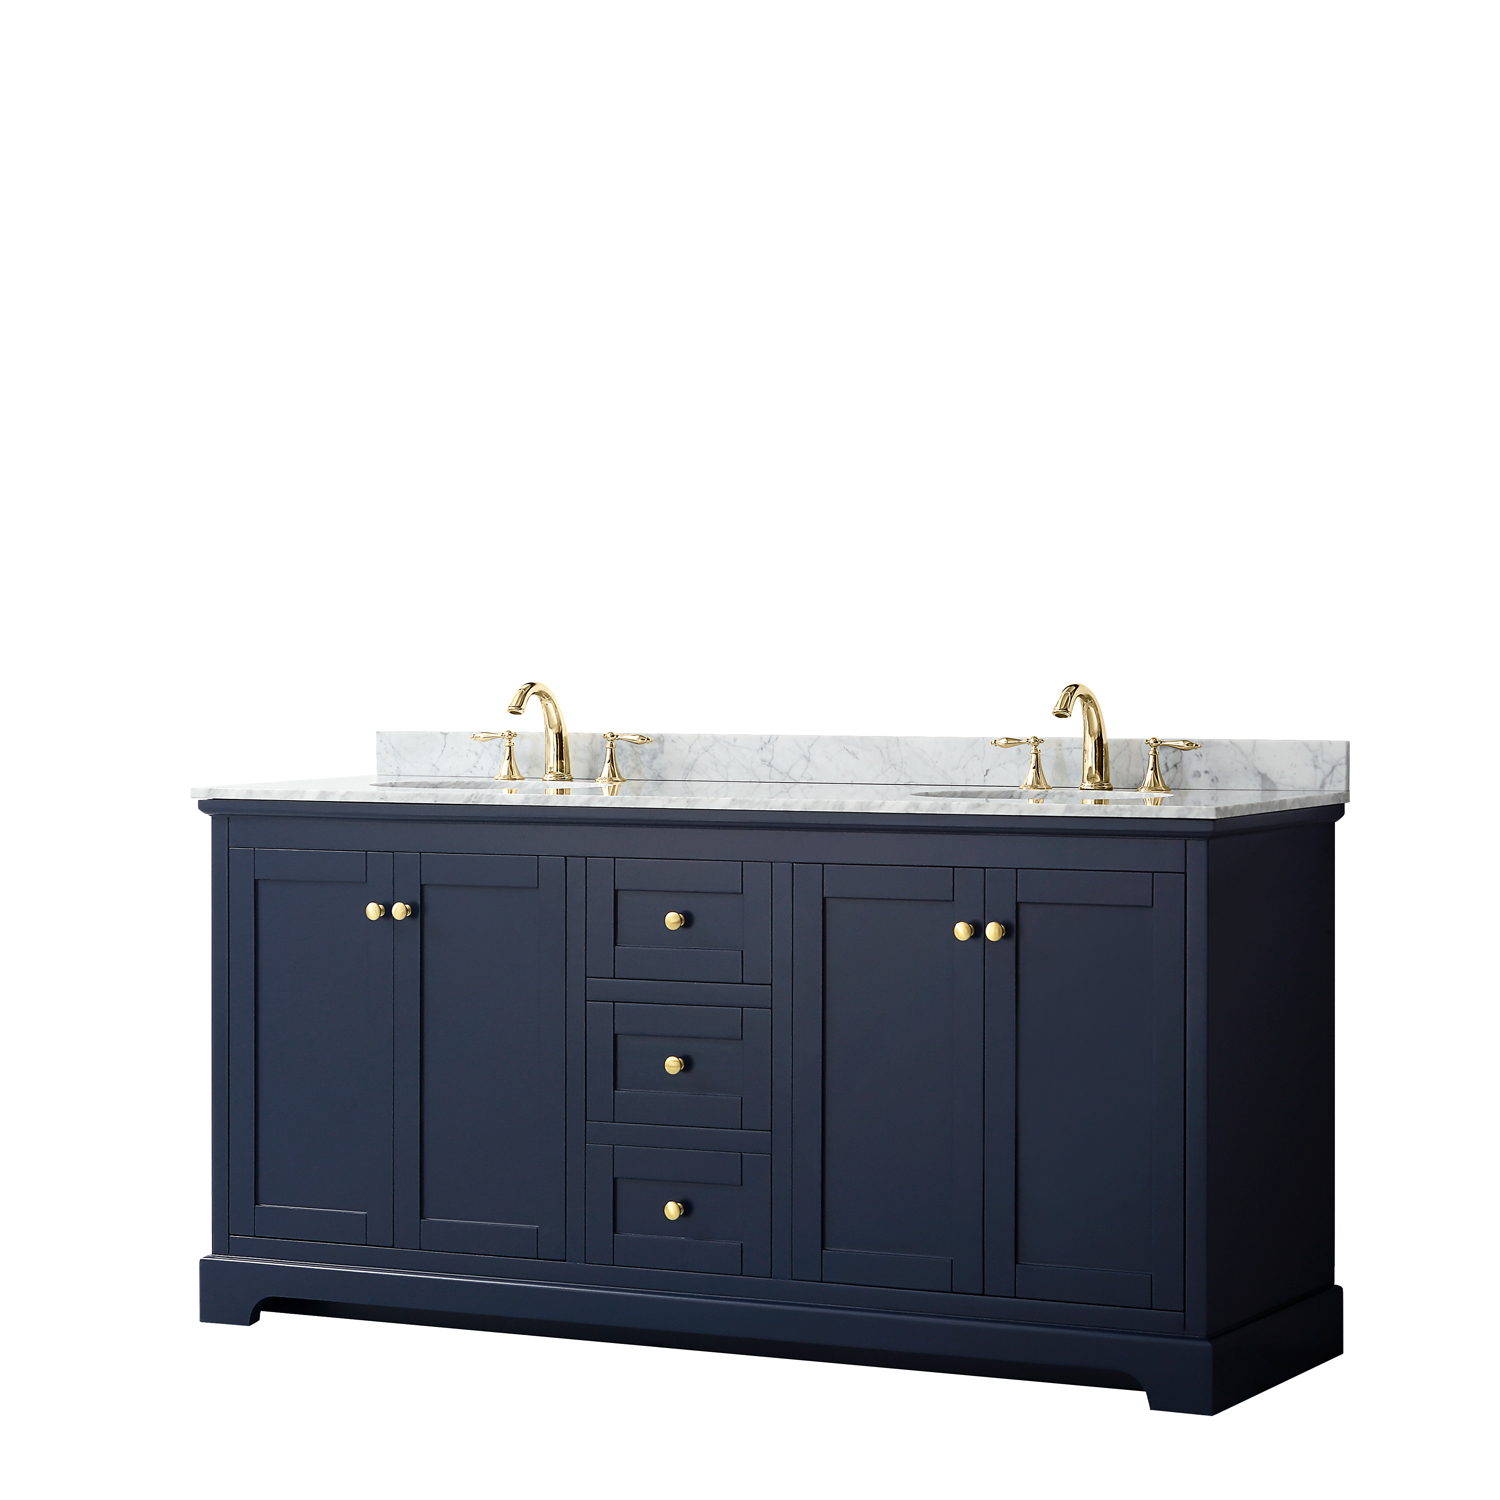 "72"" Double Bathroom Vanity in Dark Blue, No Countertop, No Sinks, and No Mirror"